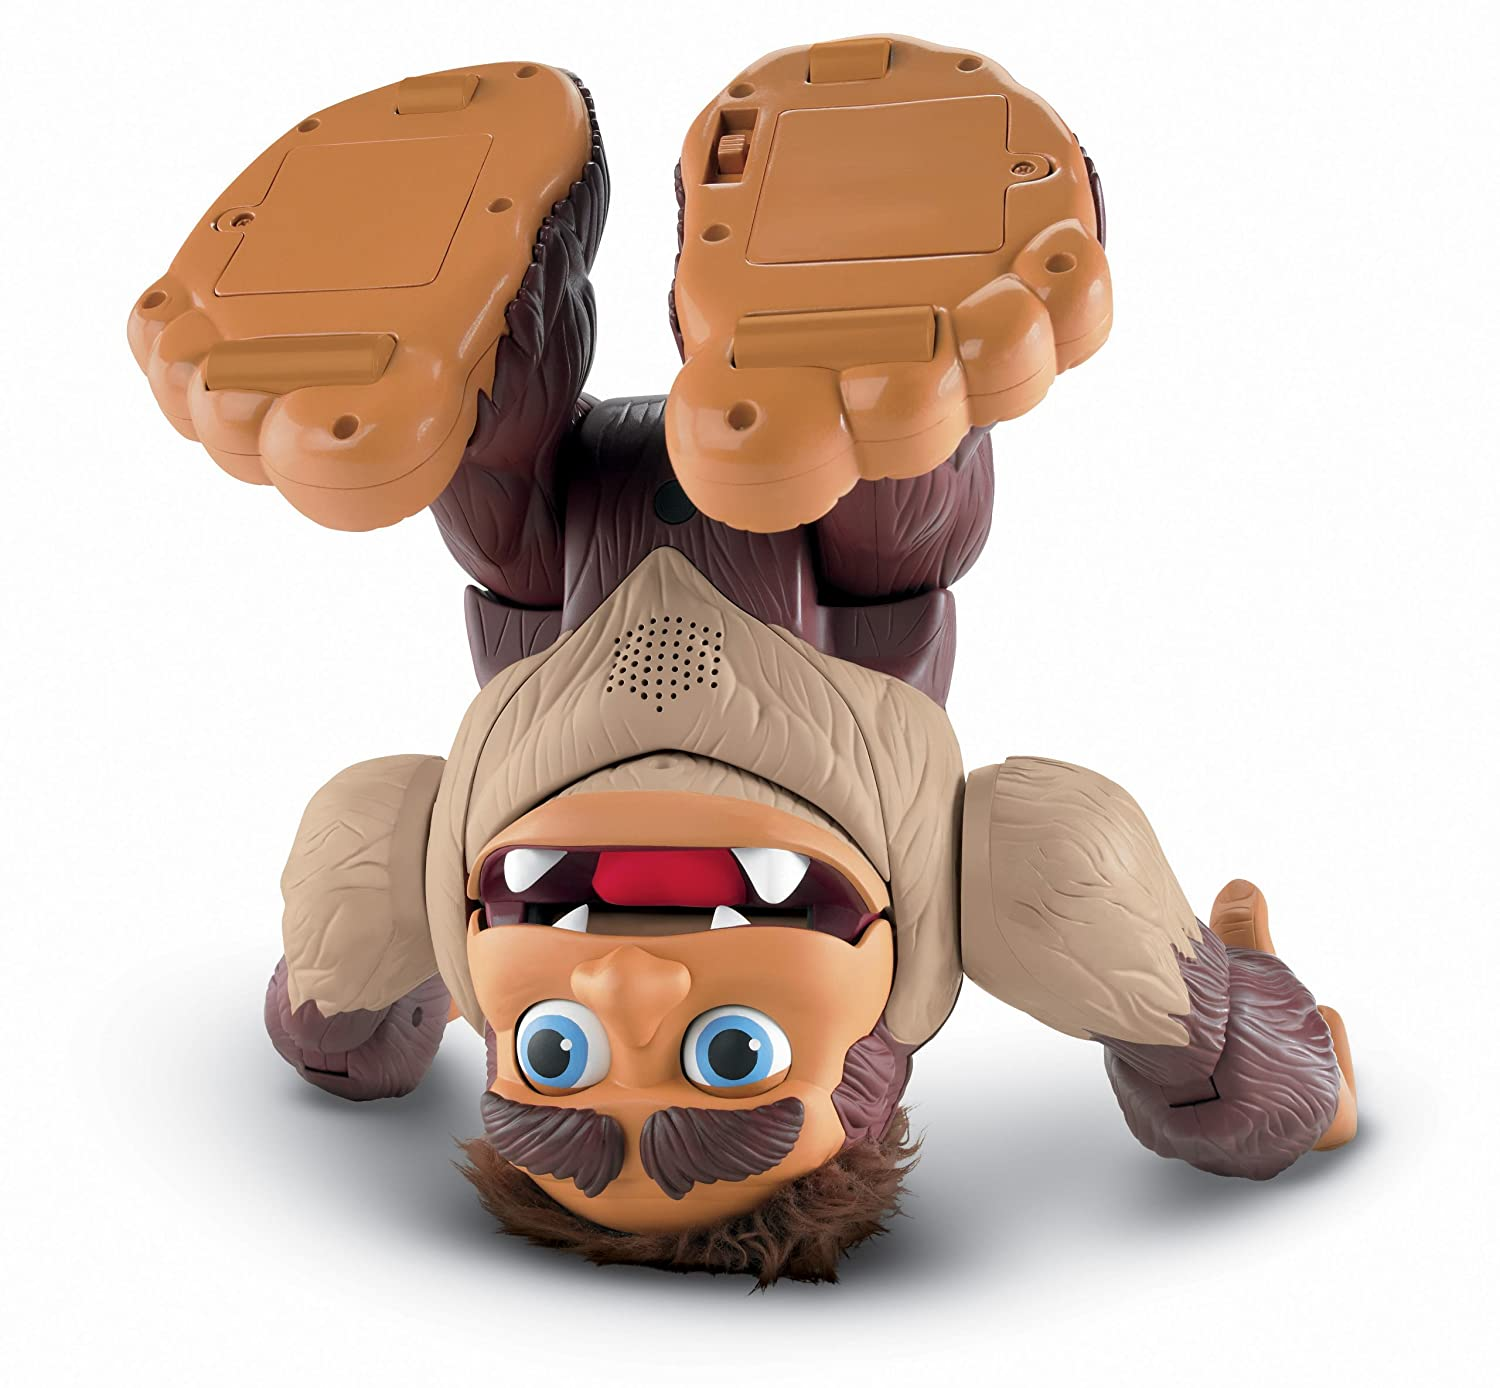 Amazon.com: Fisher-Price Imaginext Big Foot The Monster: Toys \u0026 Games